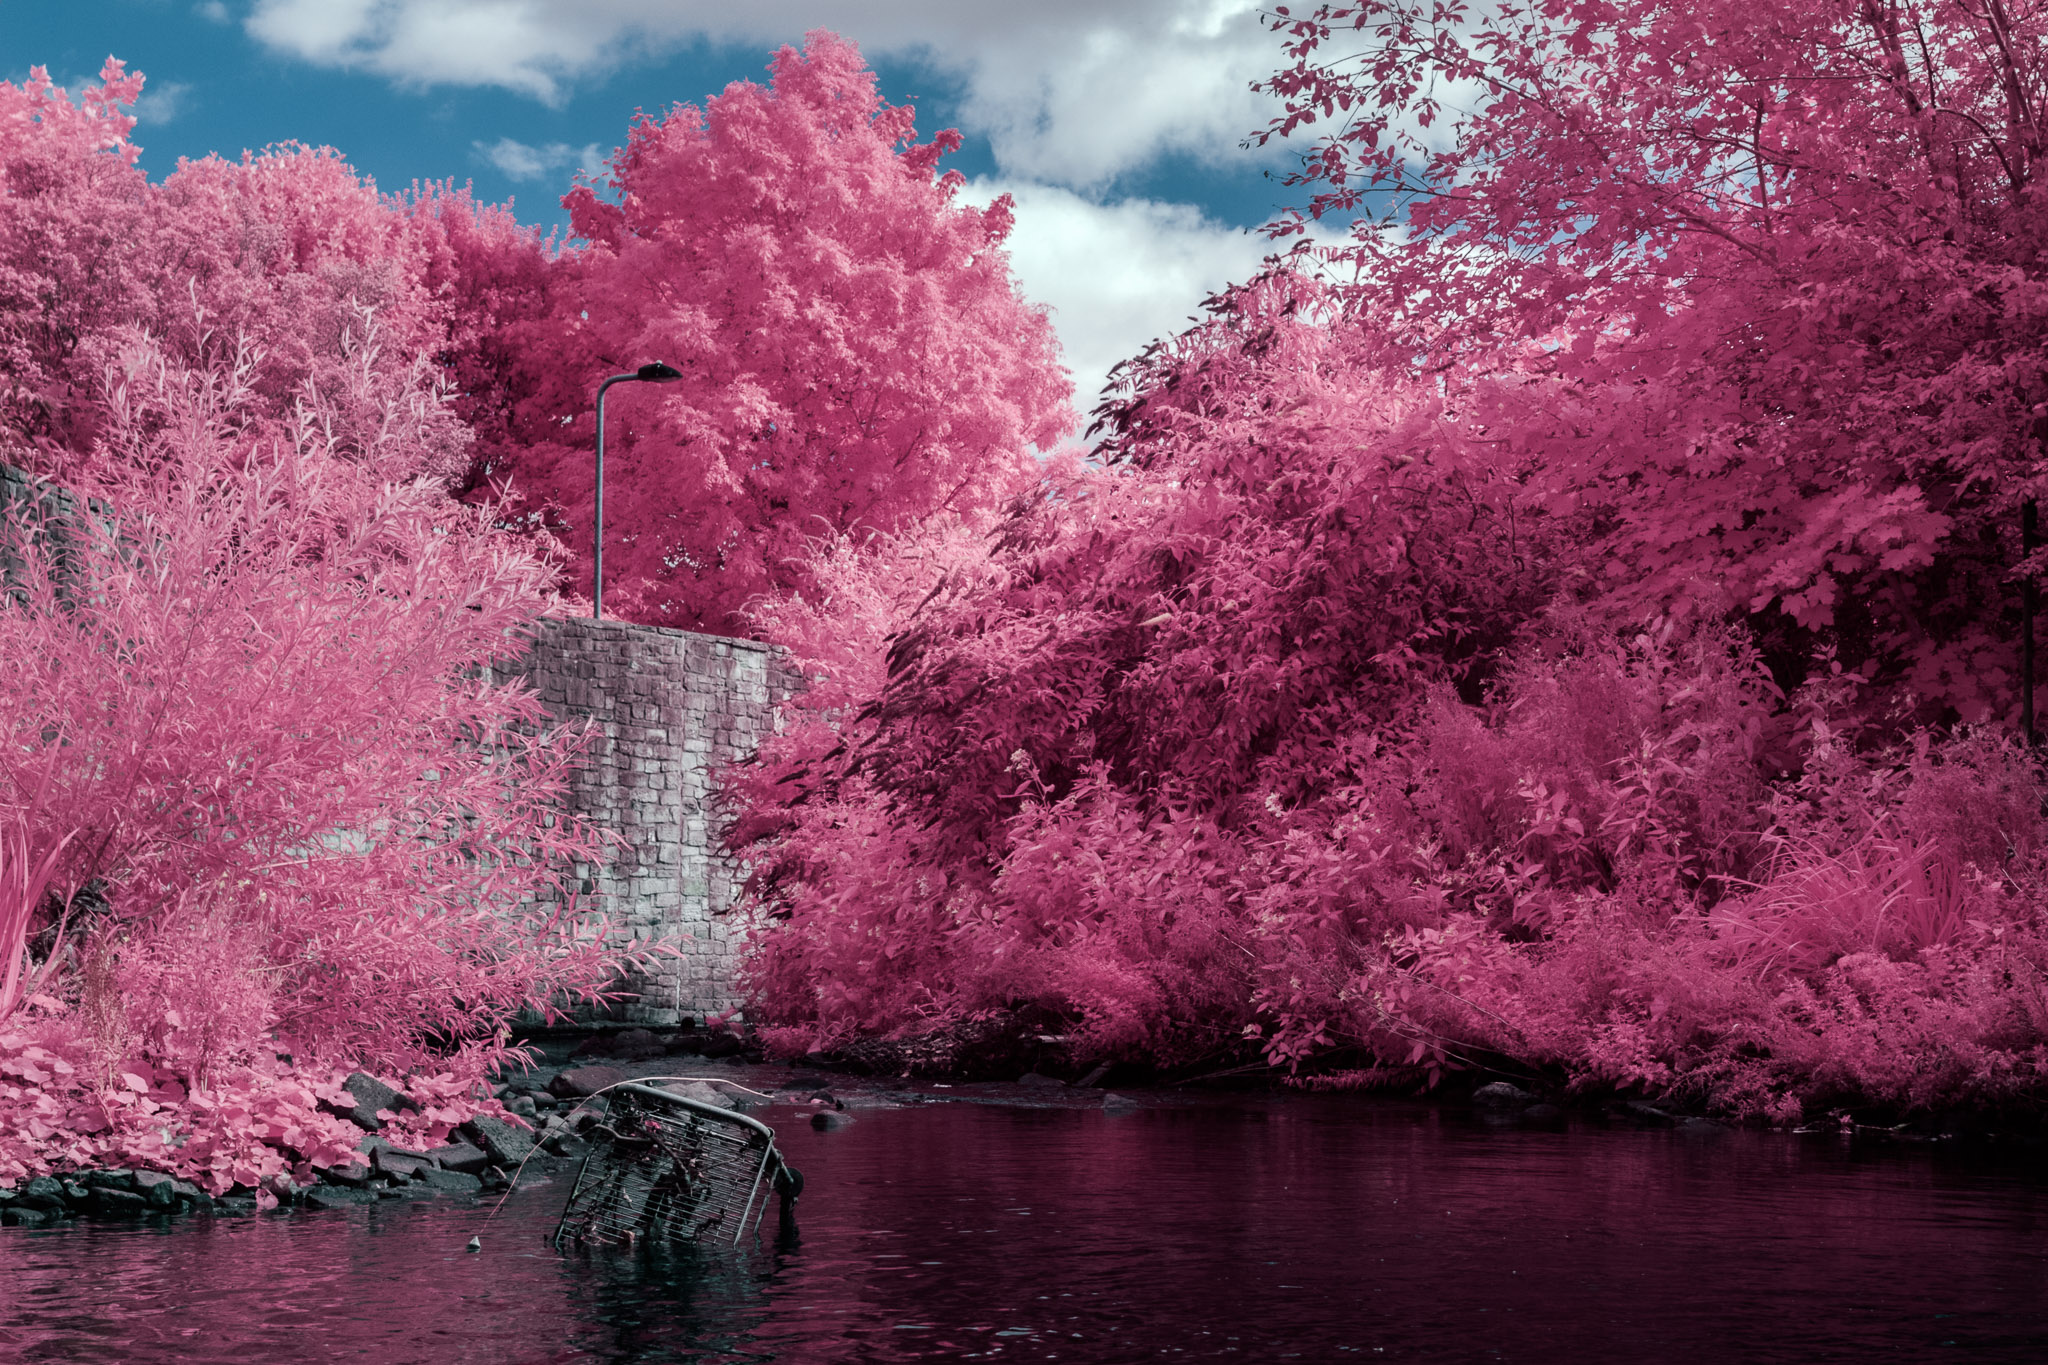 Kodak EIR Colour Infrared, Edgelands, Wasteland, Out of sight, Trolley, River ©Jonny Sutton